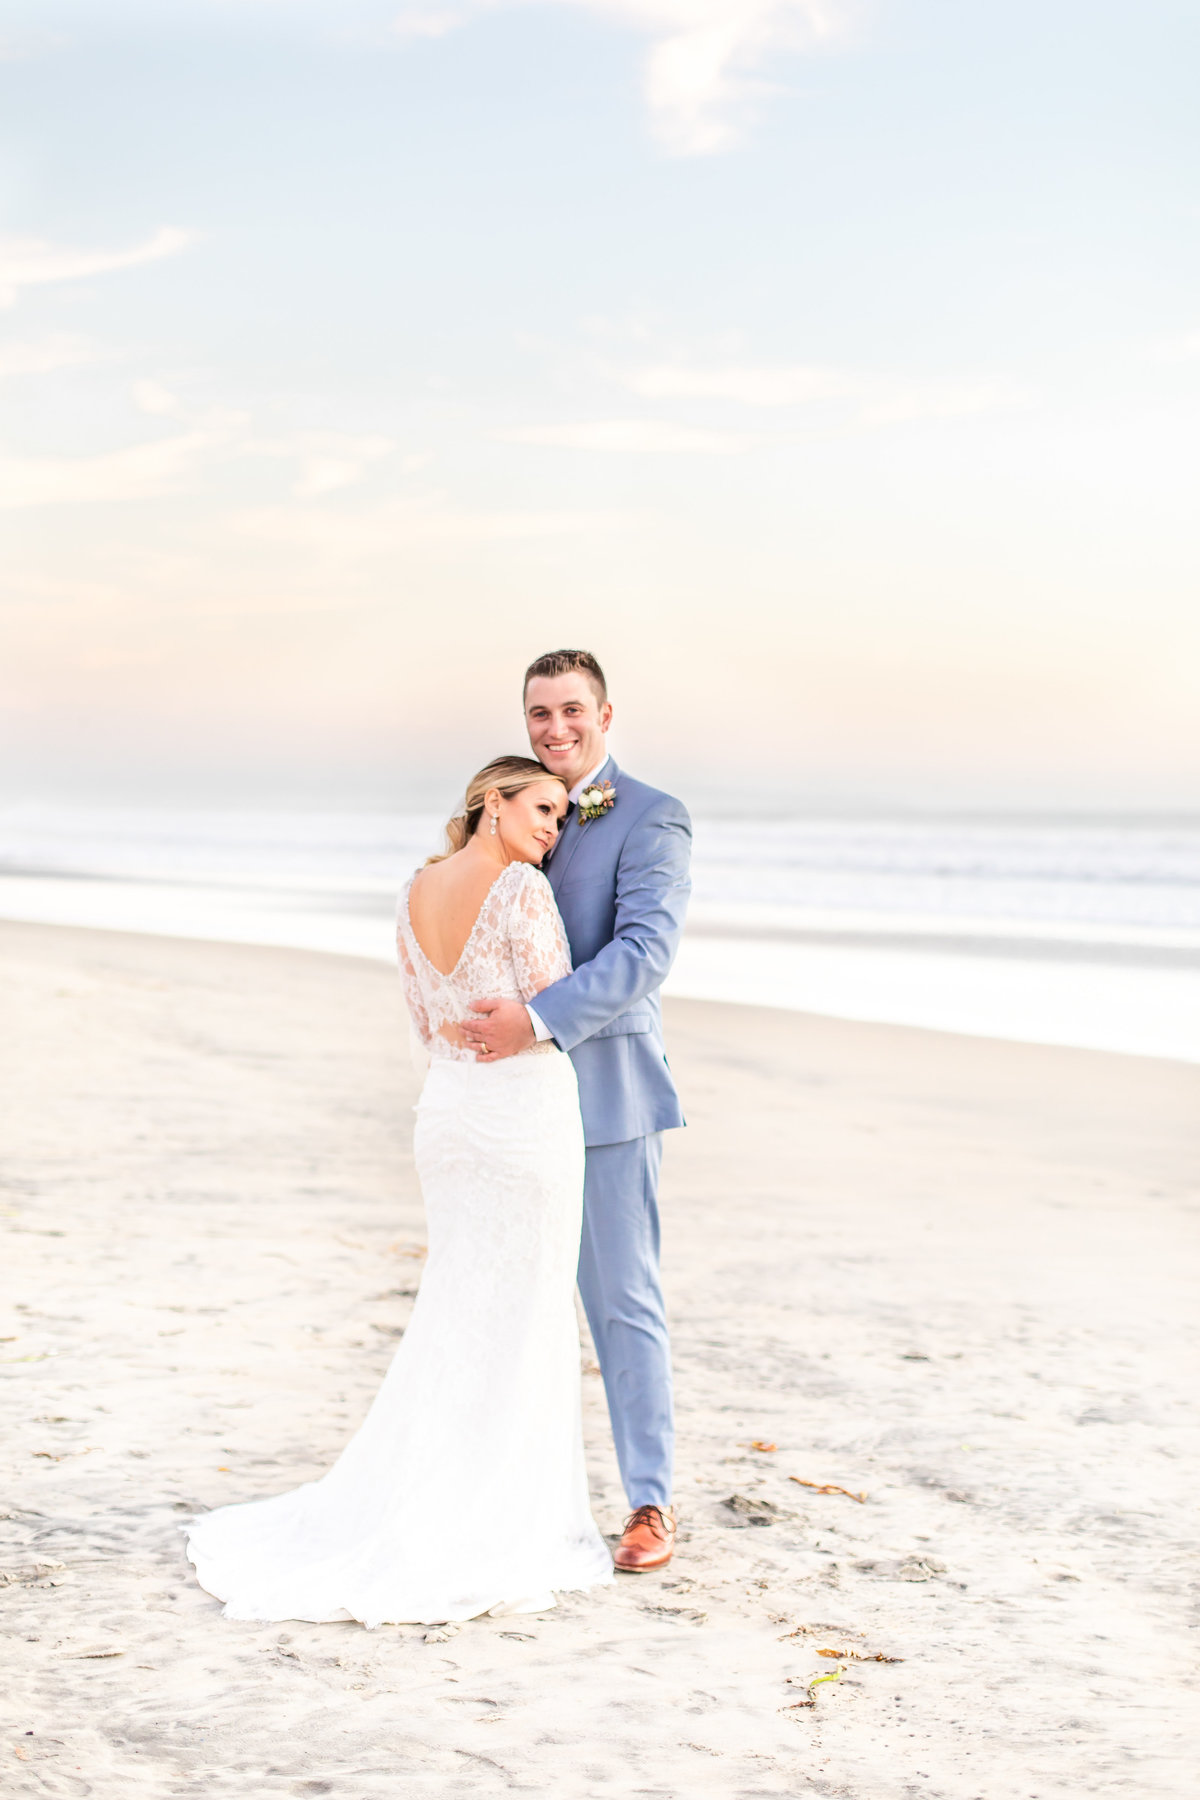 San Diego Wedding Photographer - Camila Margotta (11 of 20)